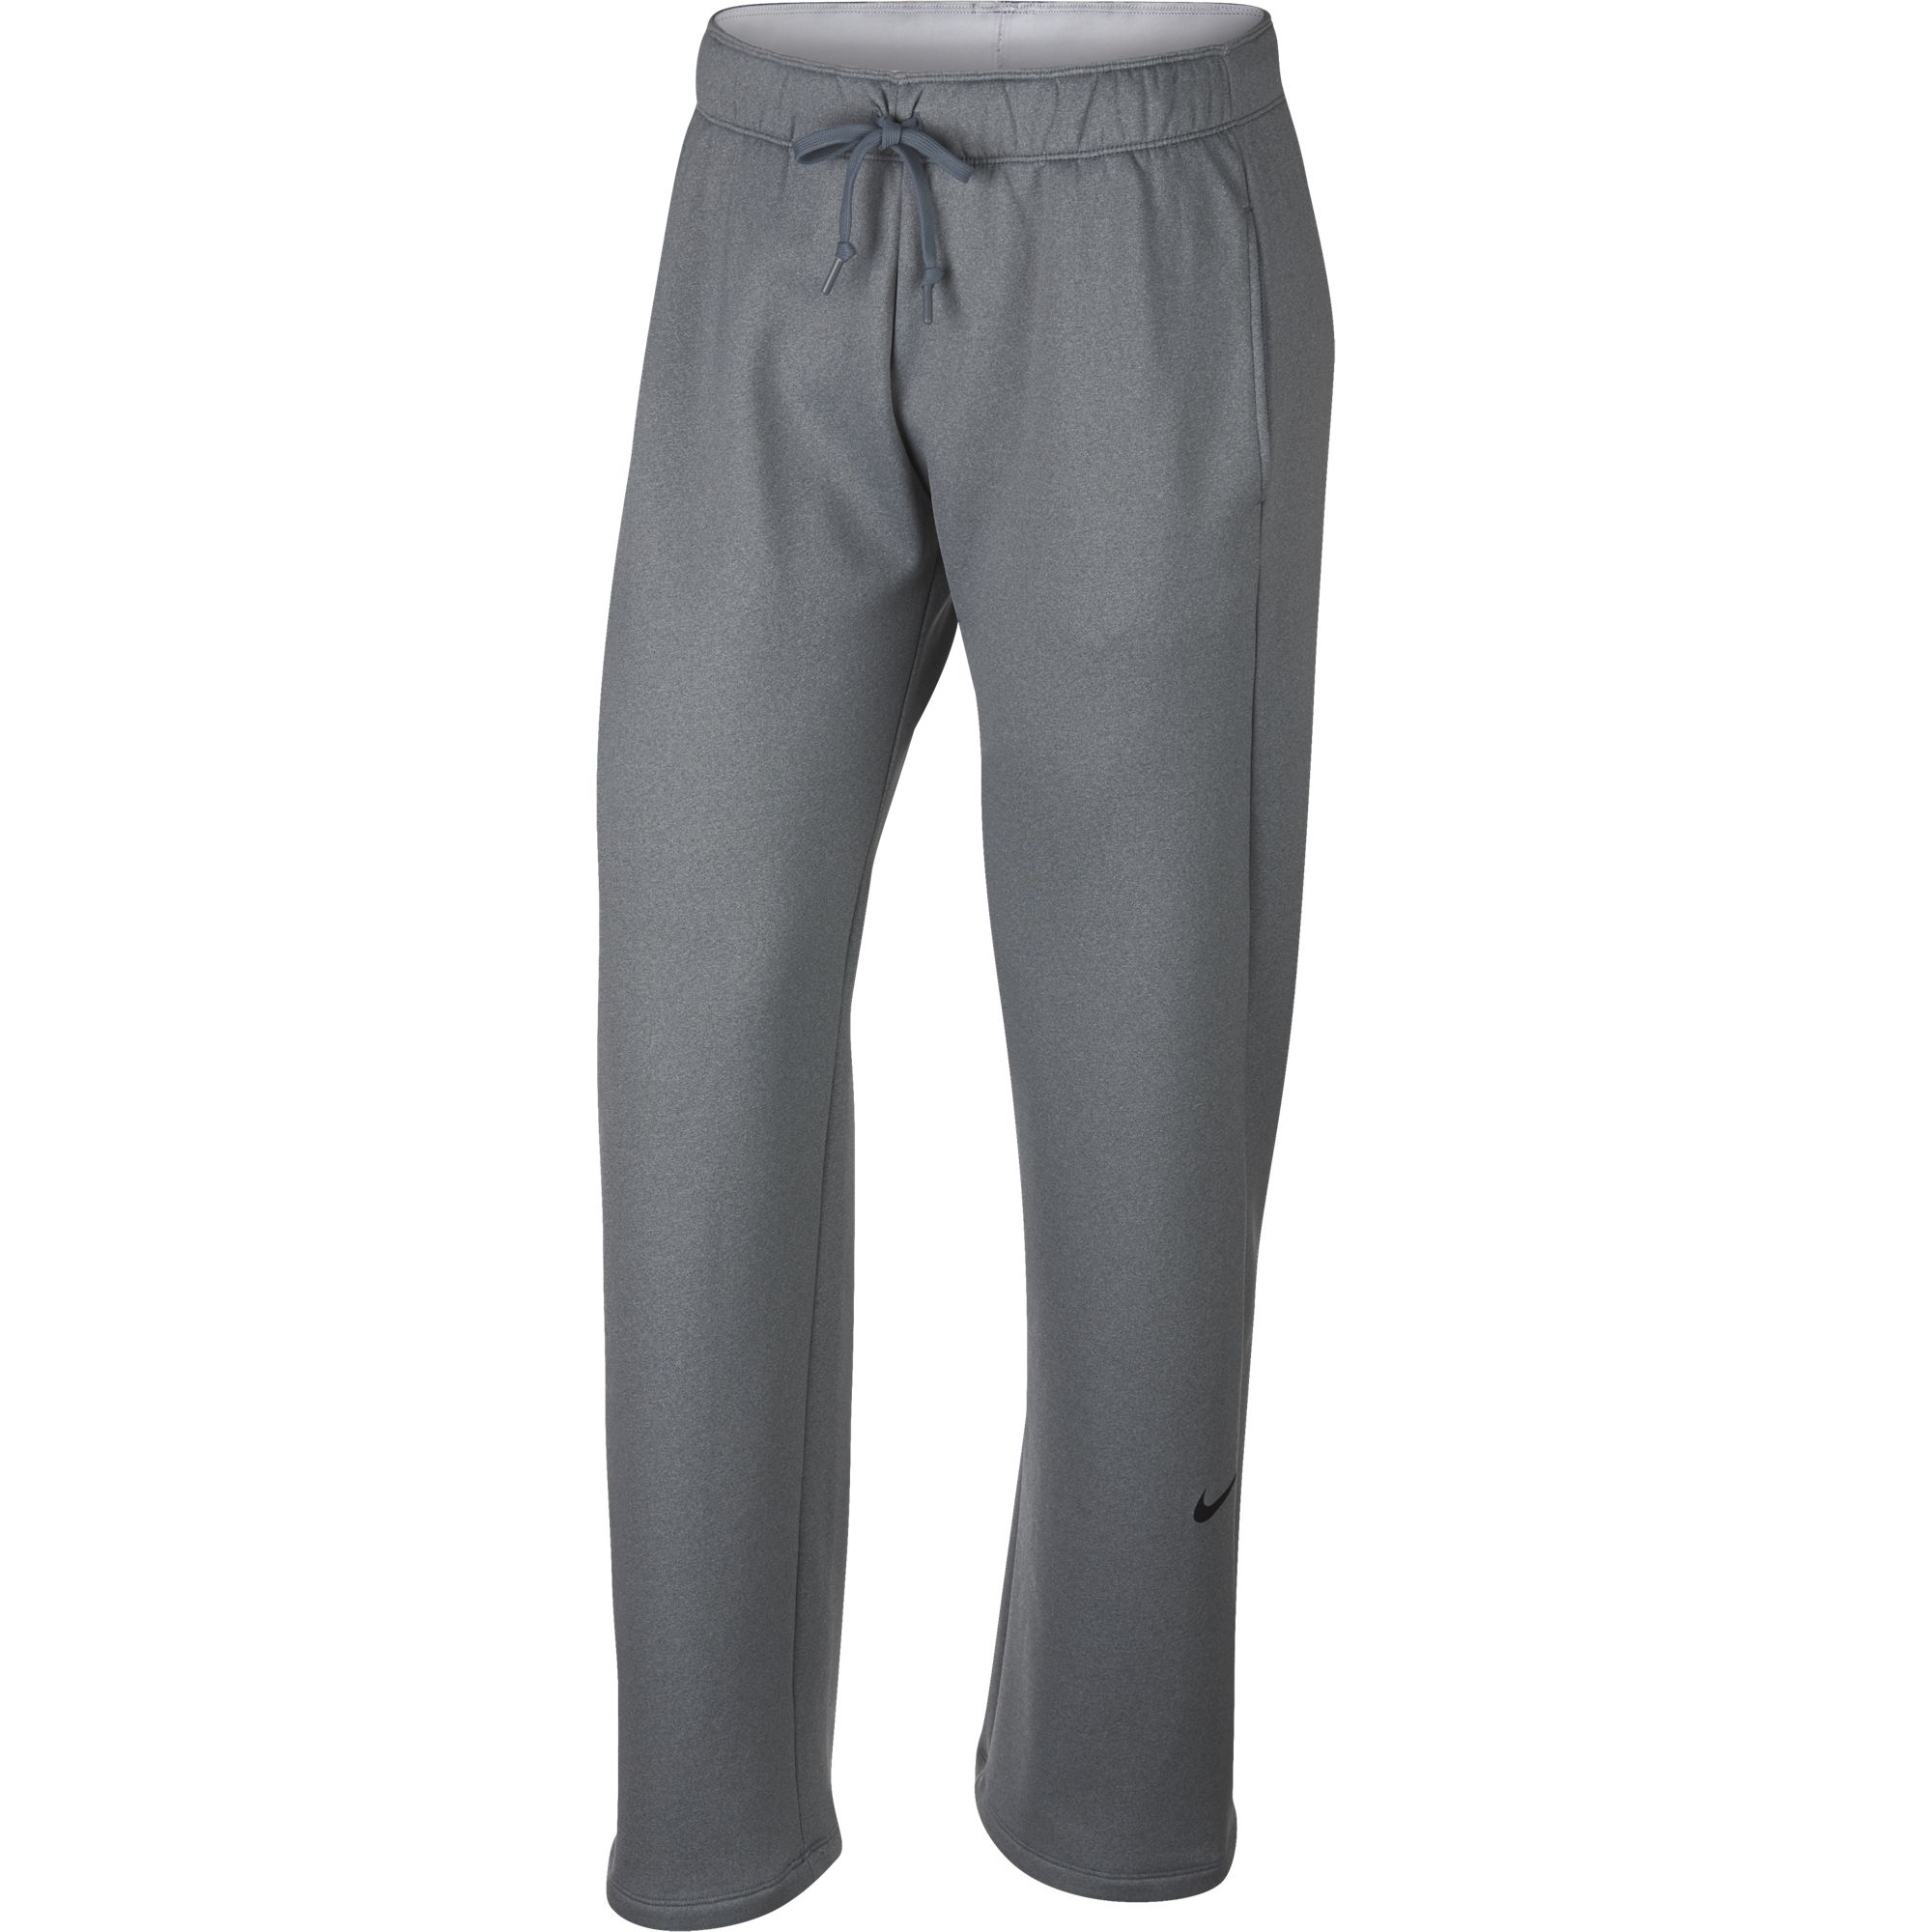 Women's Therma All Time Pants, Heather Gray, swatch